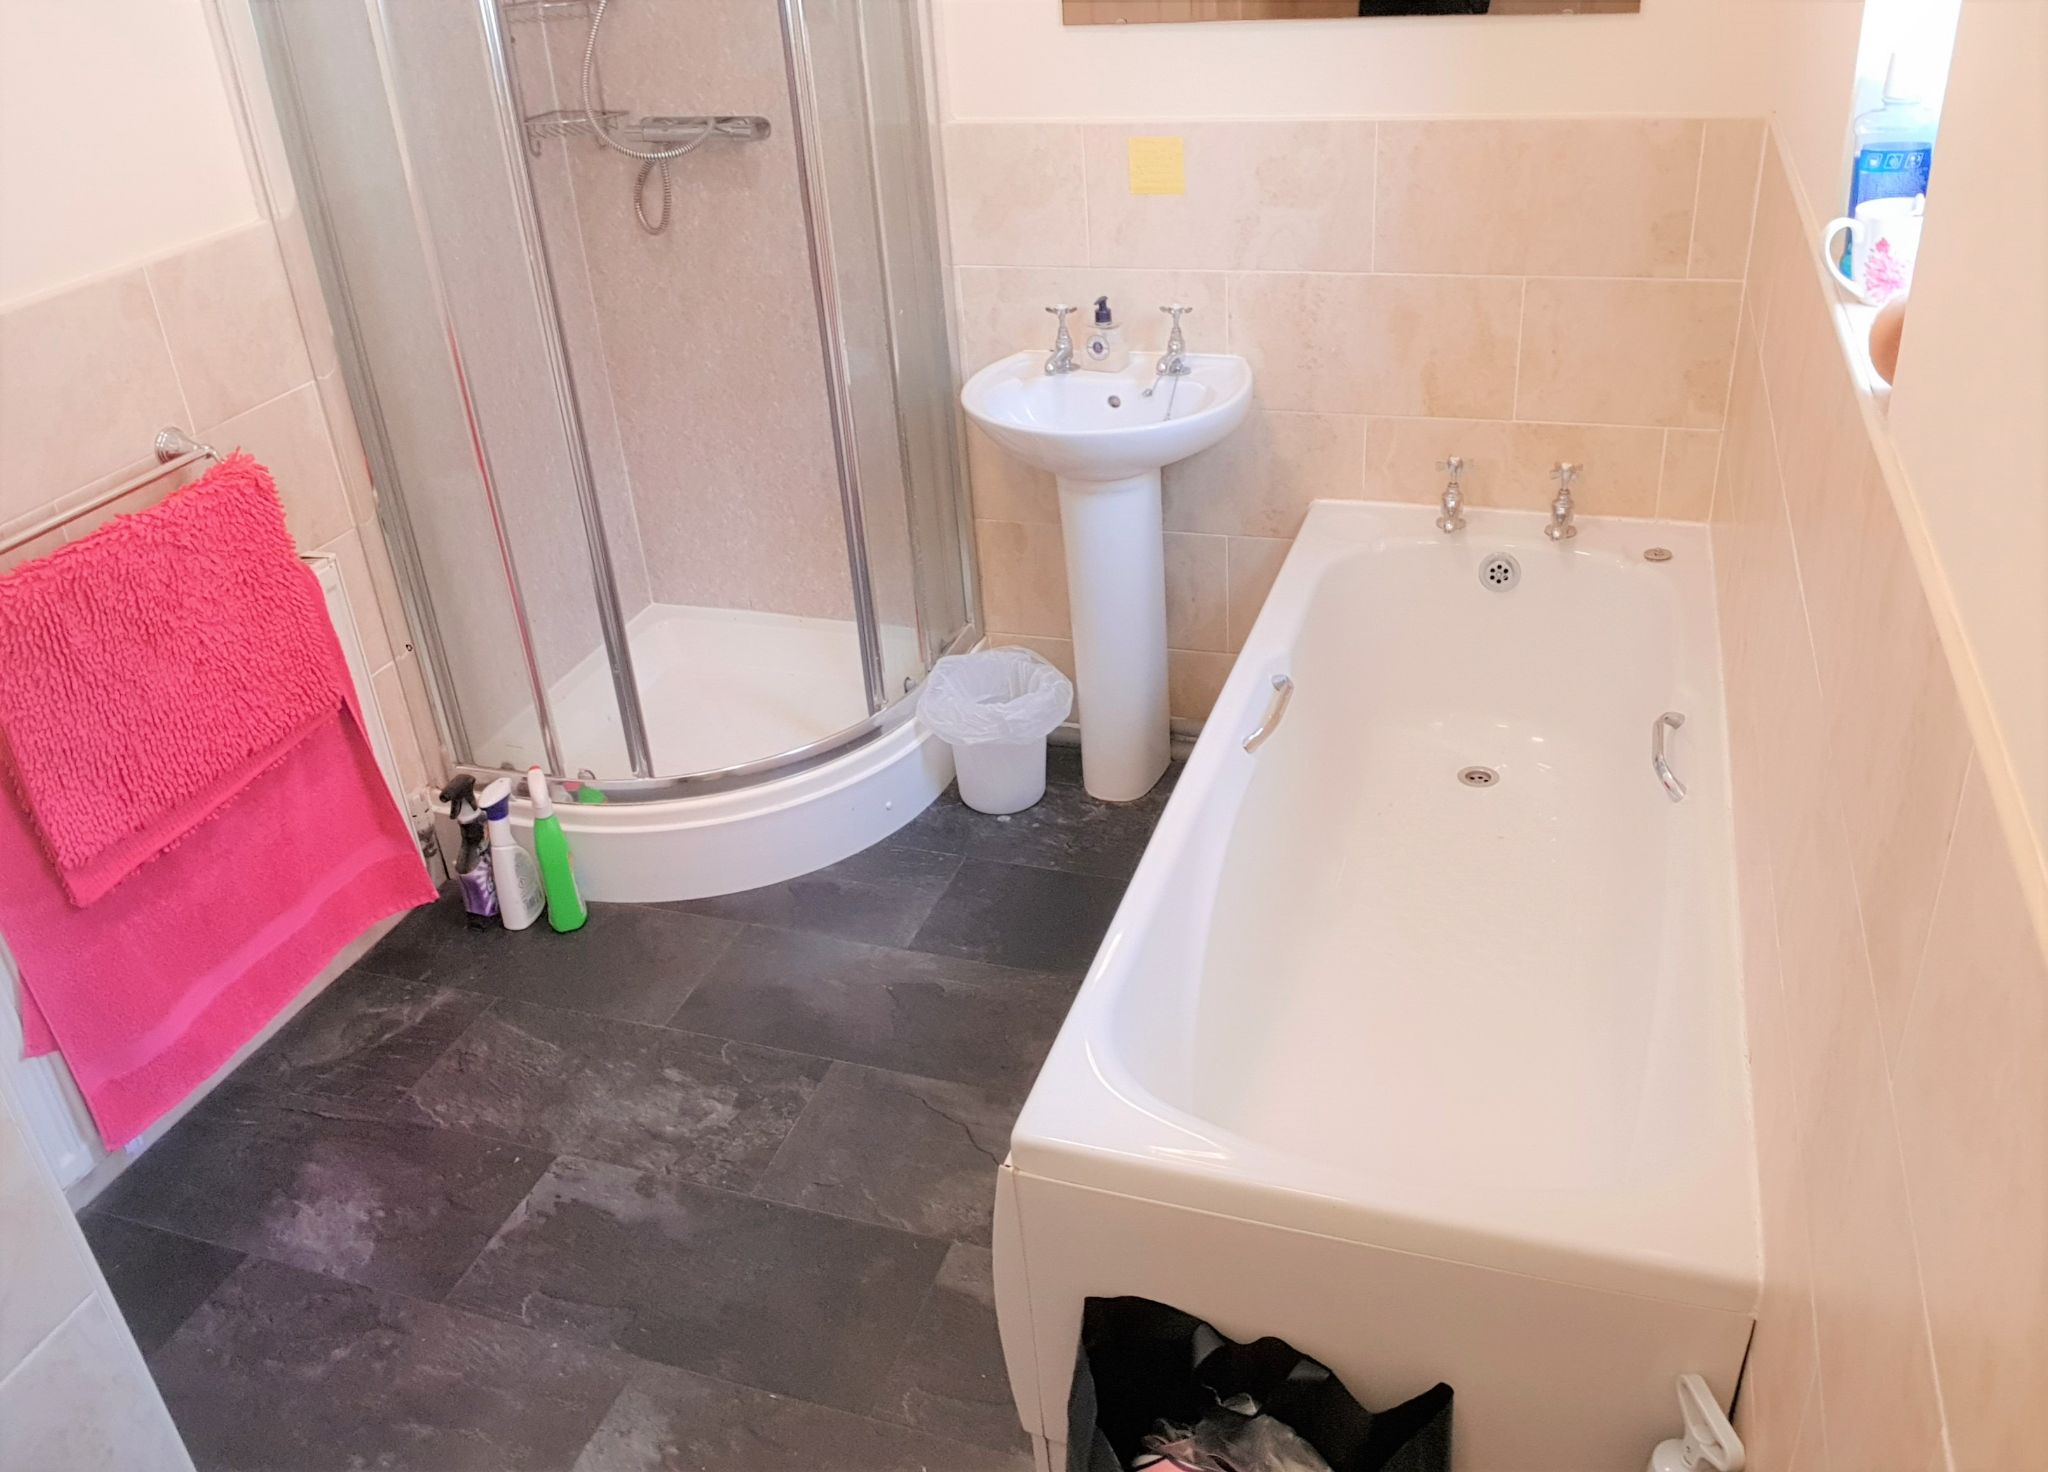 1 Bedroom Shared House To Rent - First Floor Communal Bathroom